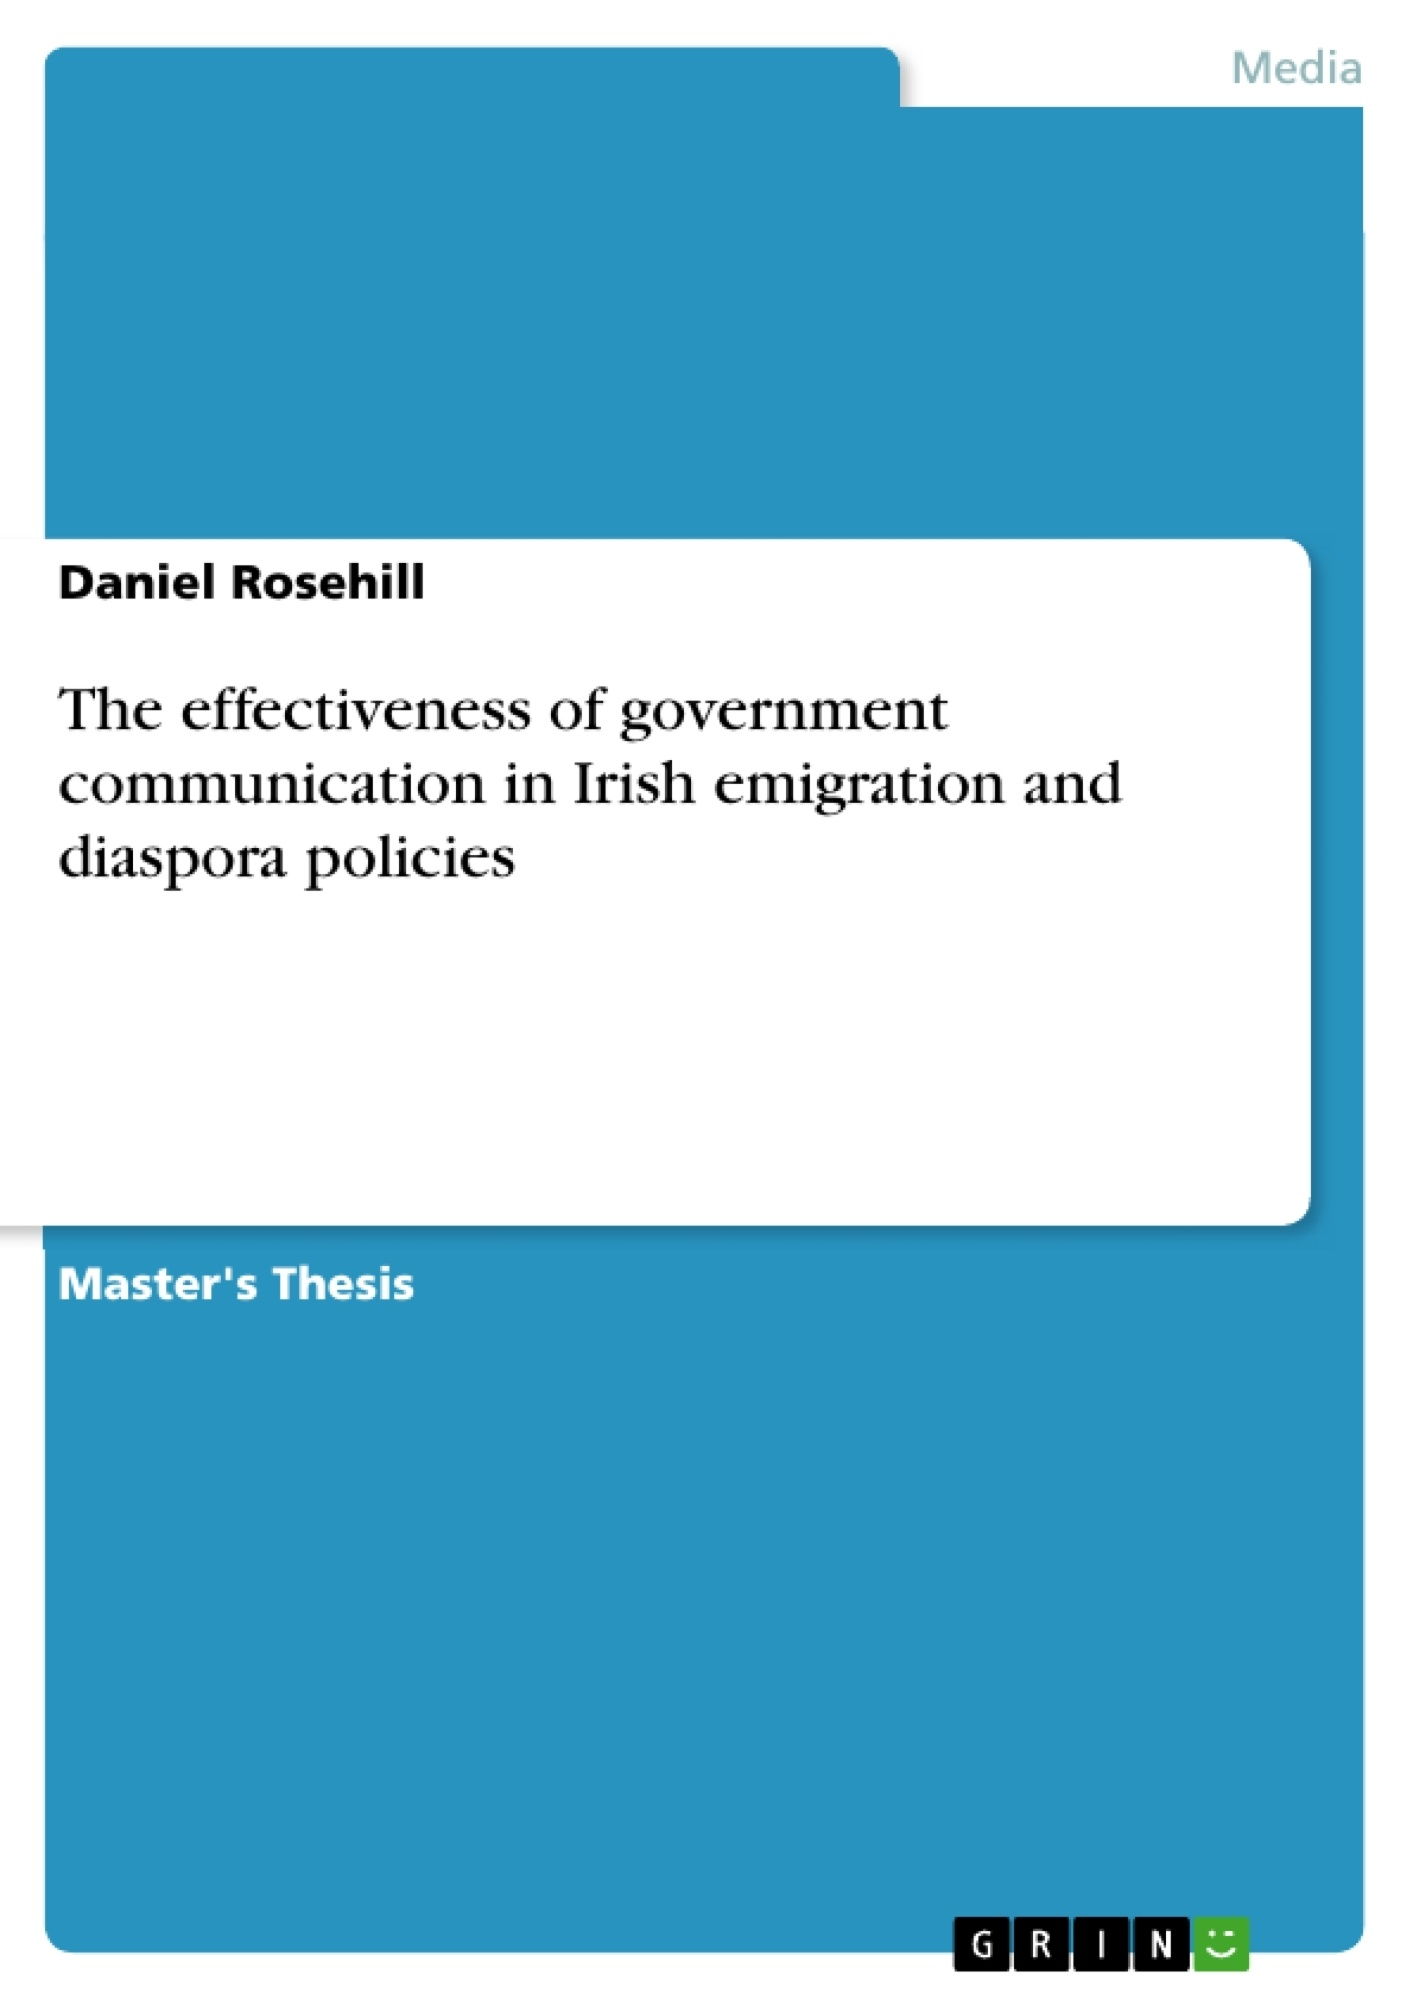 Title: The effectiveness of government communication in Irish emigration and diaspora policies